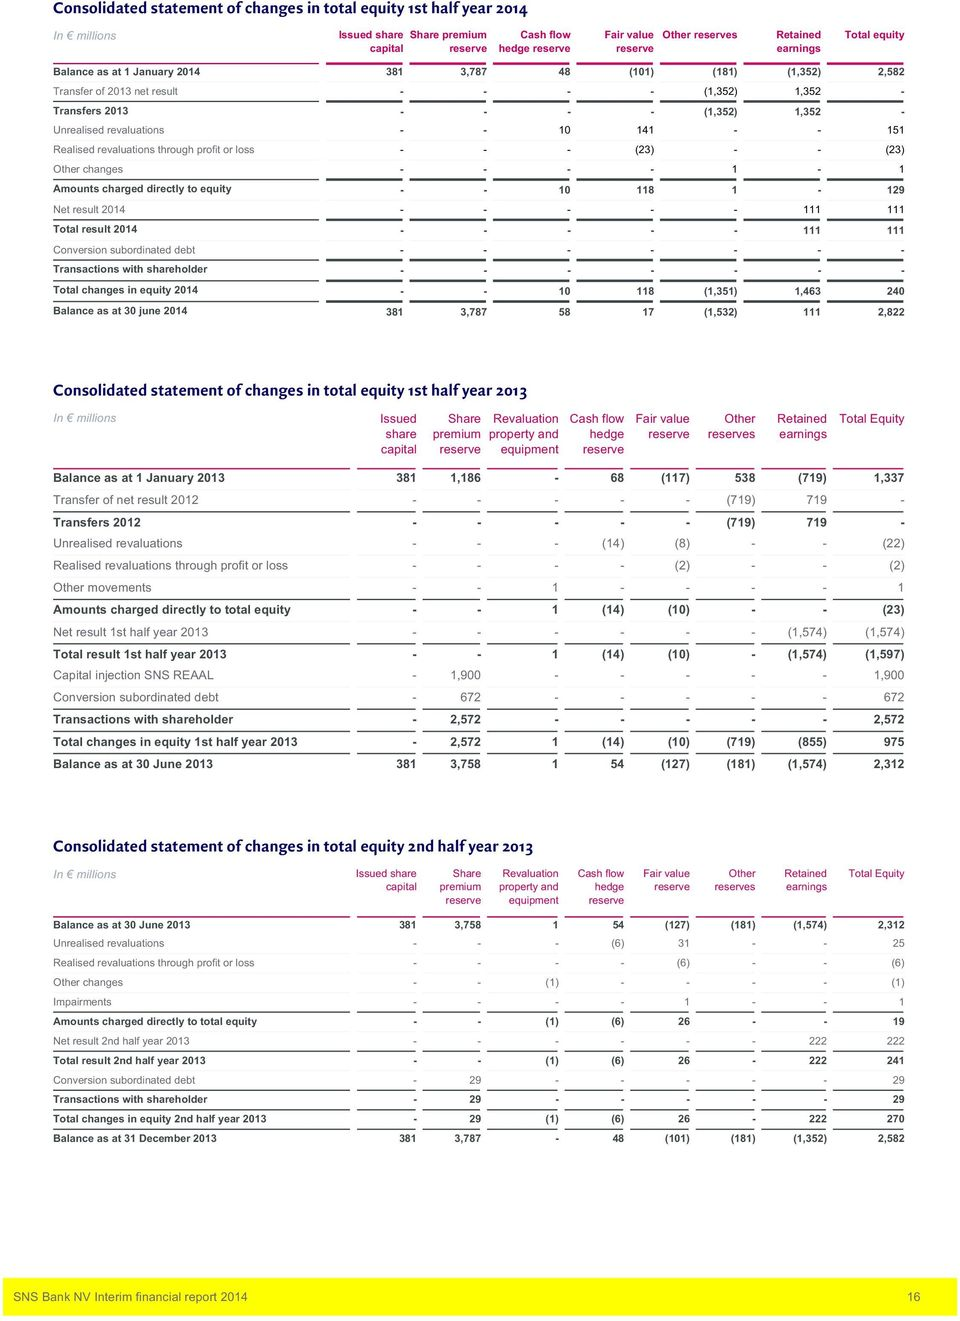 loss (23) (23) Other changes Amounts charged directly to equity 0 8 29 Net result 204 Total result 204 Conversion subordinated debt Transactions with shareholder Total changes in equity 204 0 8